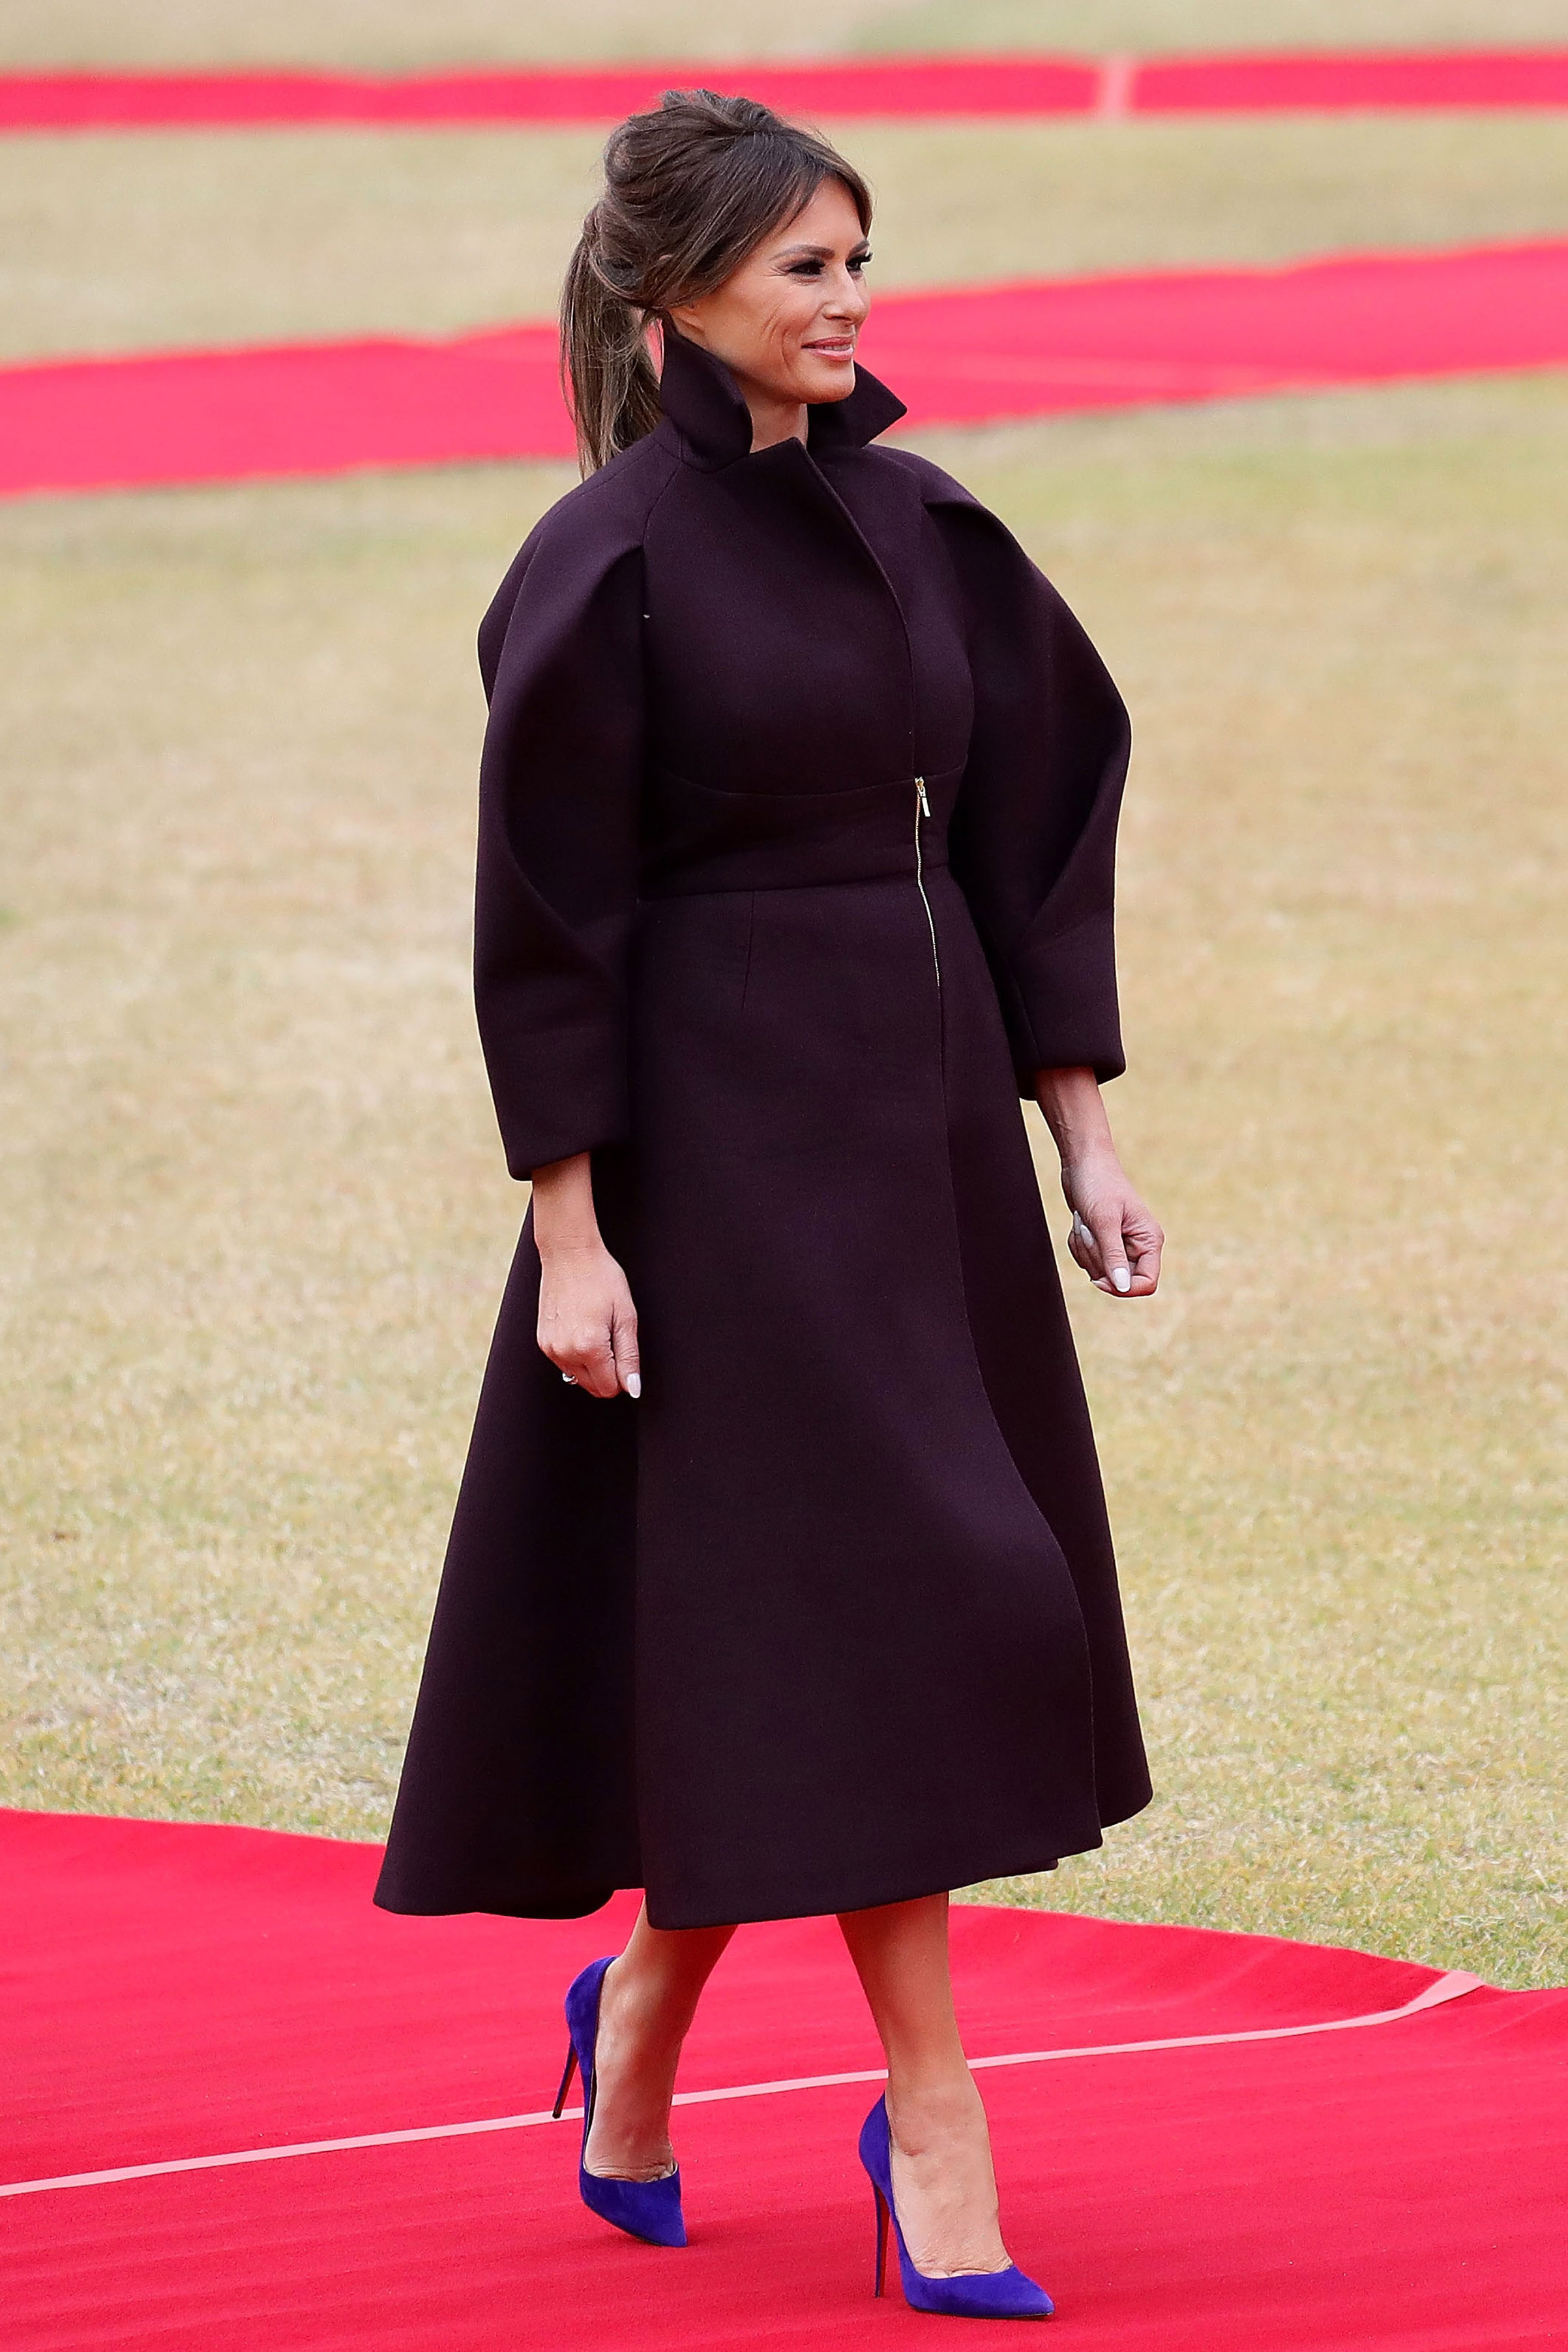 First Lady Melania Trump wears a sculptural mauve coatdress with an exposed zipper by Delpozo during a welcoming ceremony held at the presidential Blue House in Seoul, South Korea, on Nov. 7, 2017.